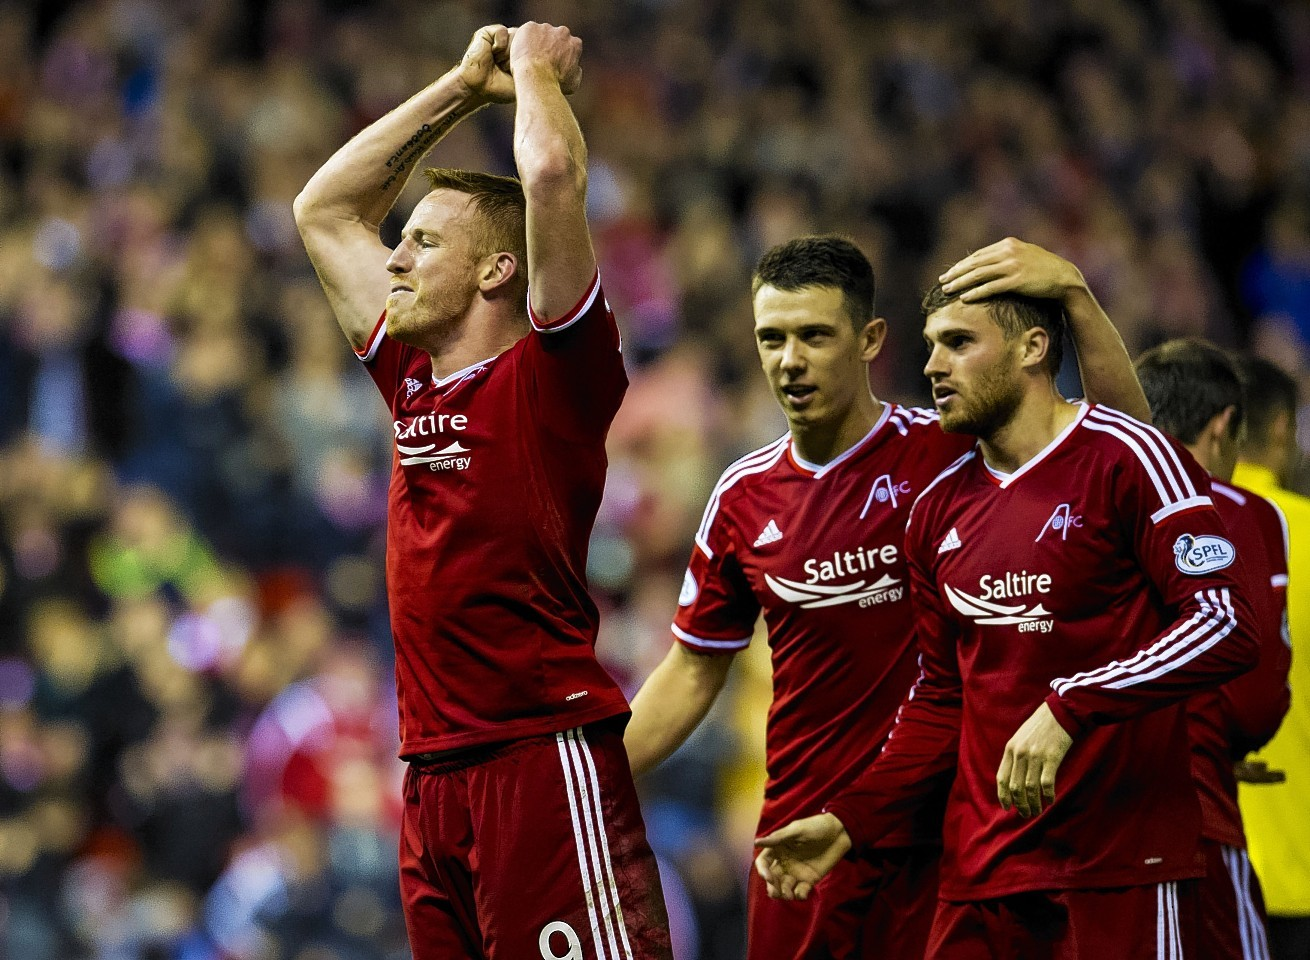 Adam Rooney is likely to feature against his old club after netting four goals in his last two matches